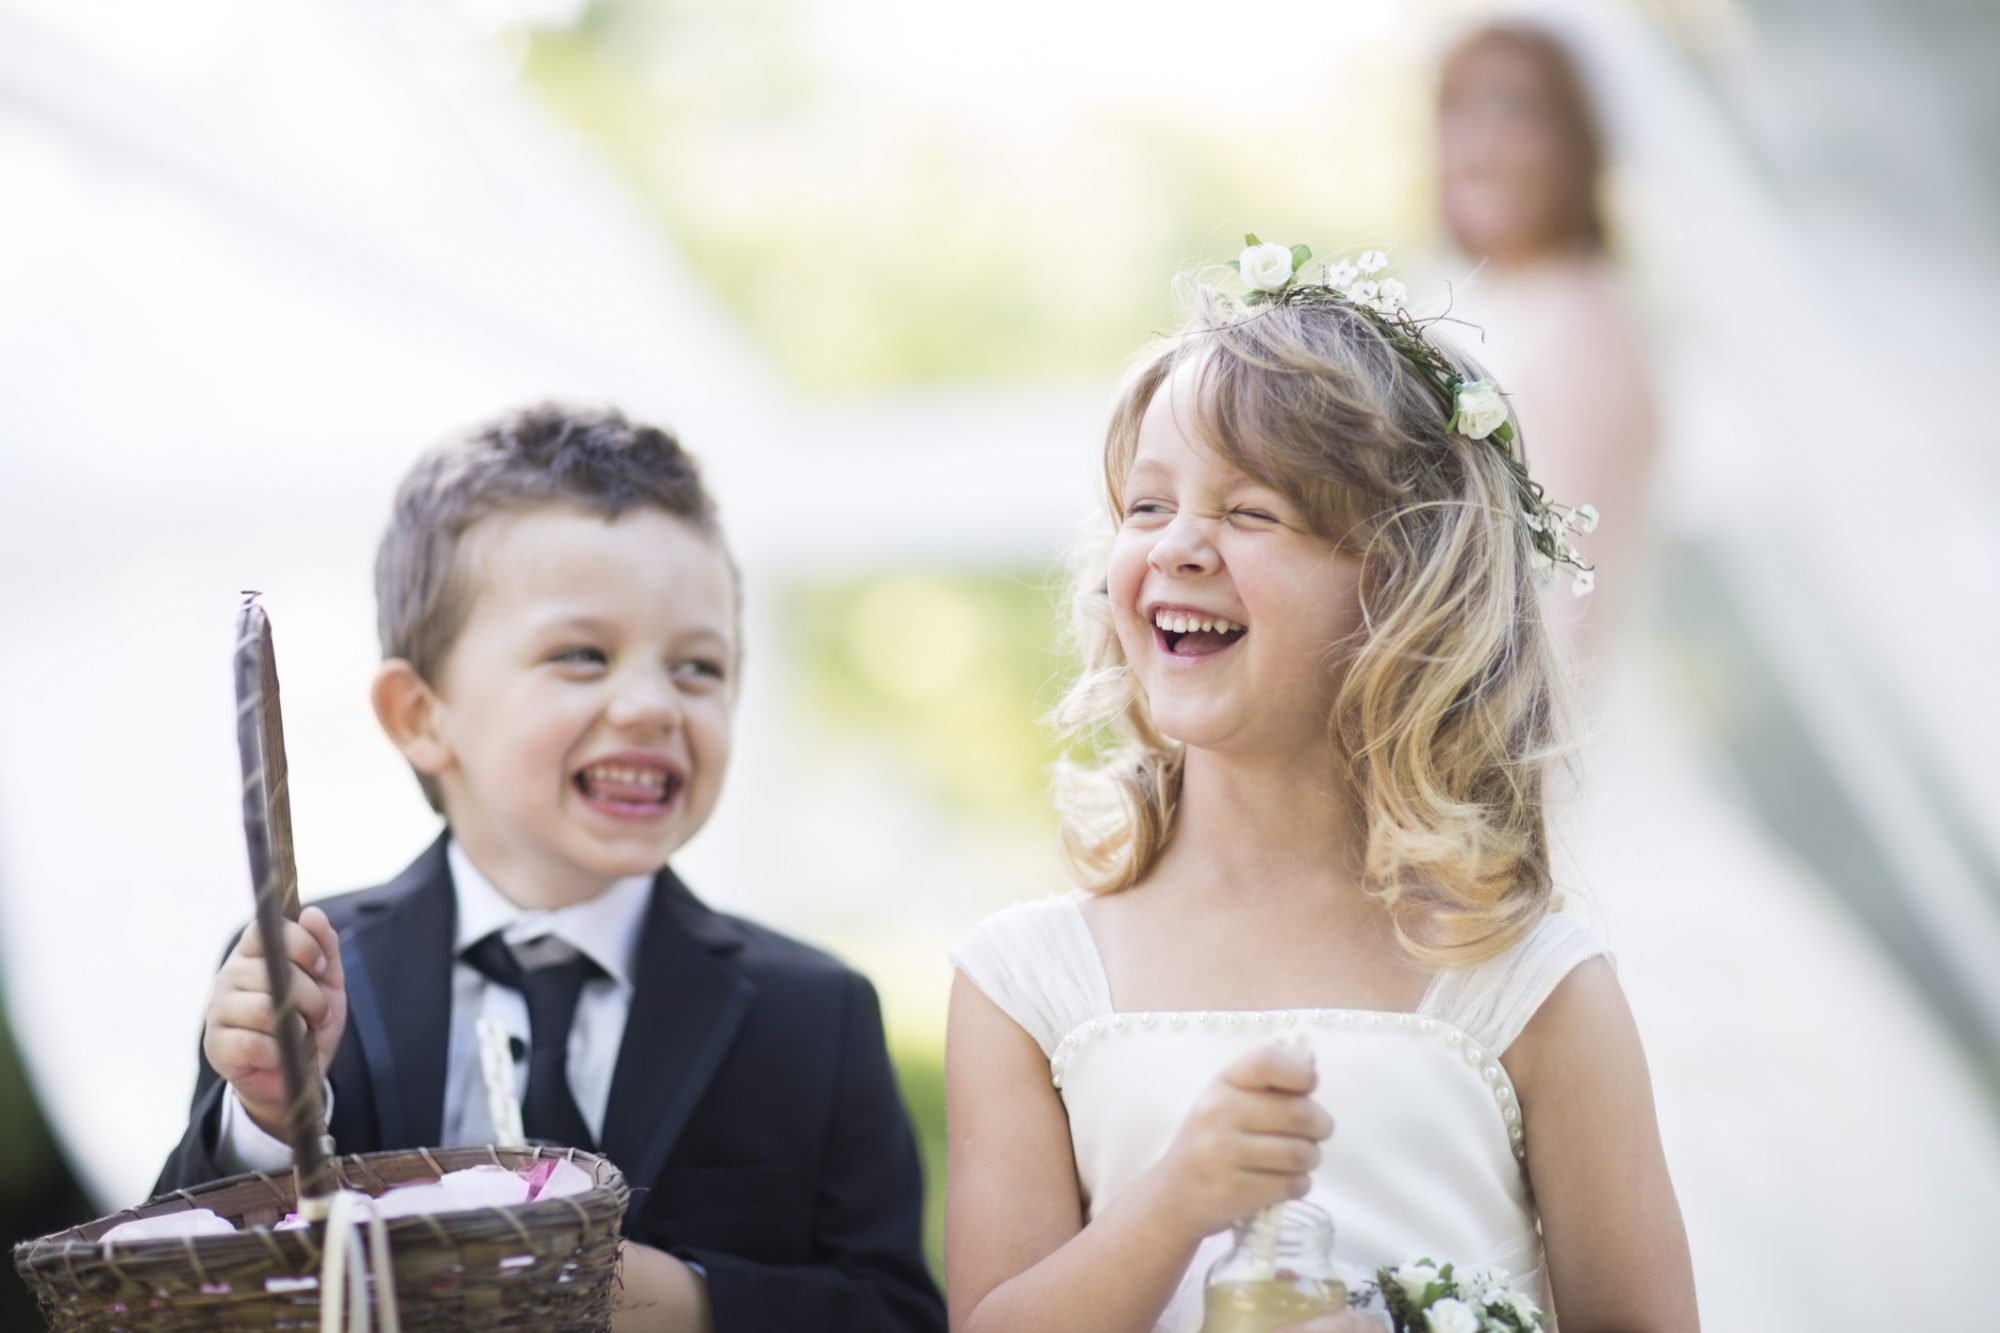 Should Your Wedding Be Child-Friendly or Kid-Free?